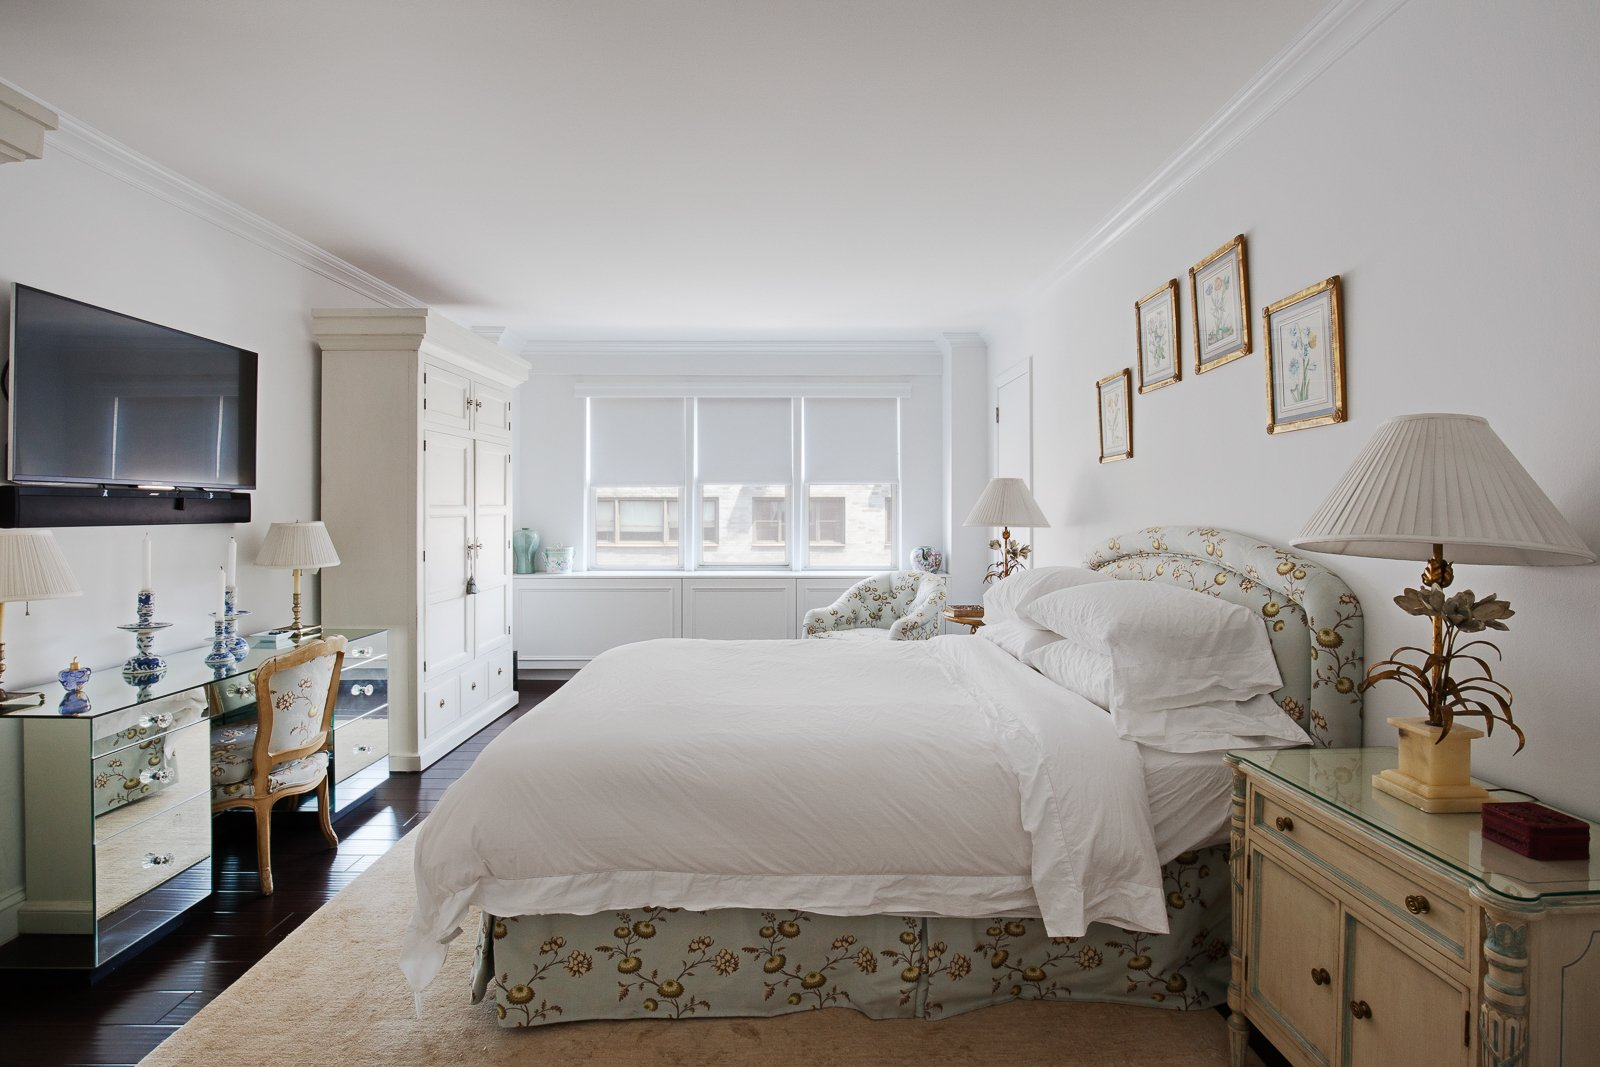 Bedroom  AN ART-FILLED APARTMENT RENOVATION 40 YEARS IN THE MAKING! by Pixy Interiors